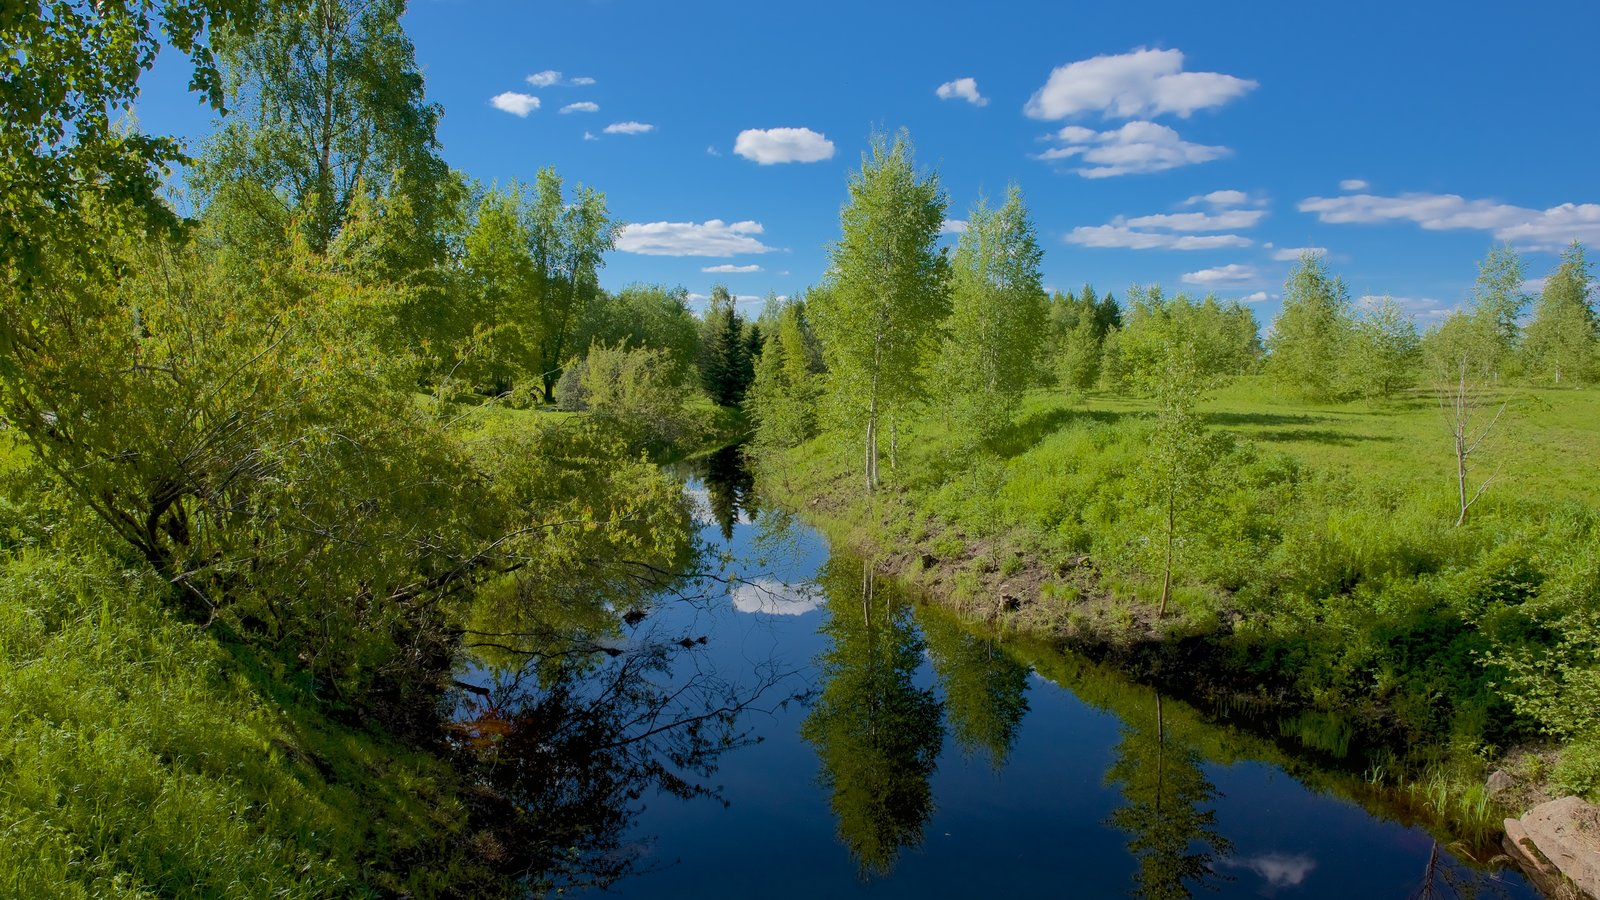 Arktikum showing tranquil scenes and a river or creek